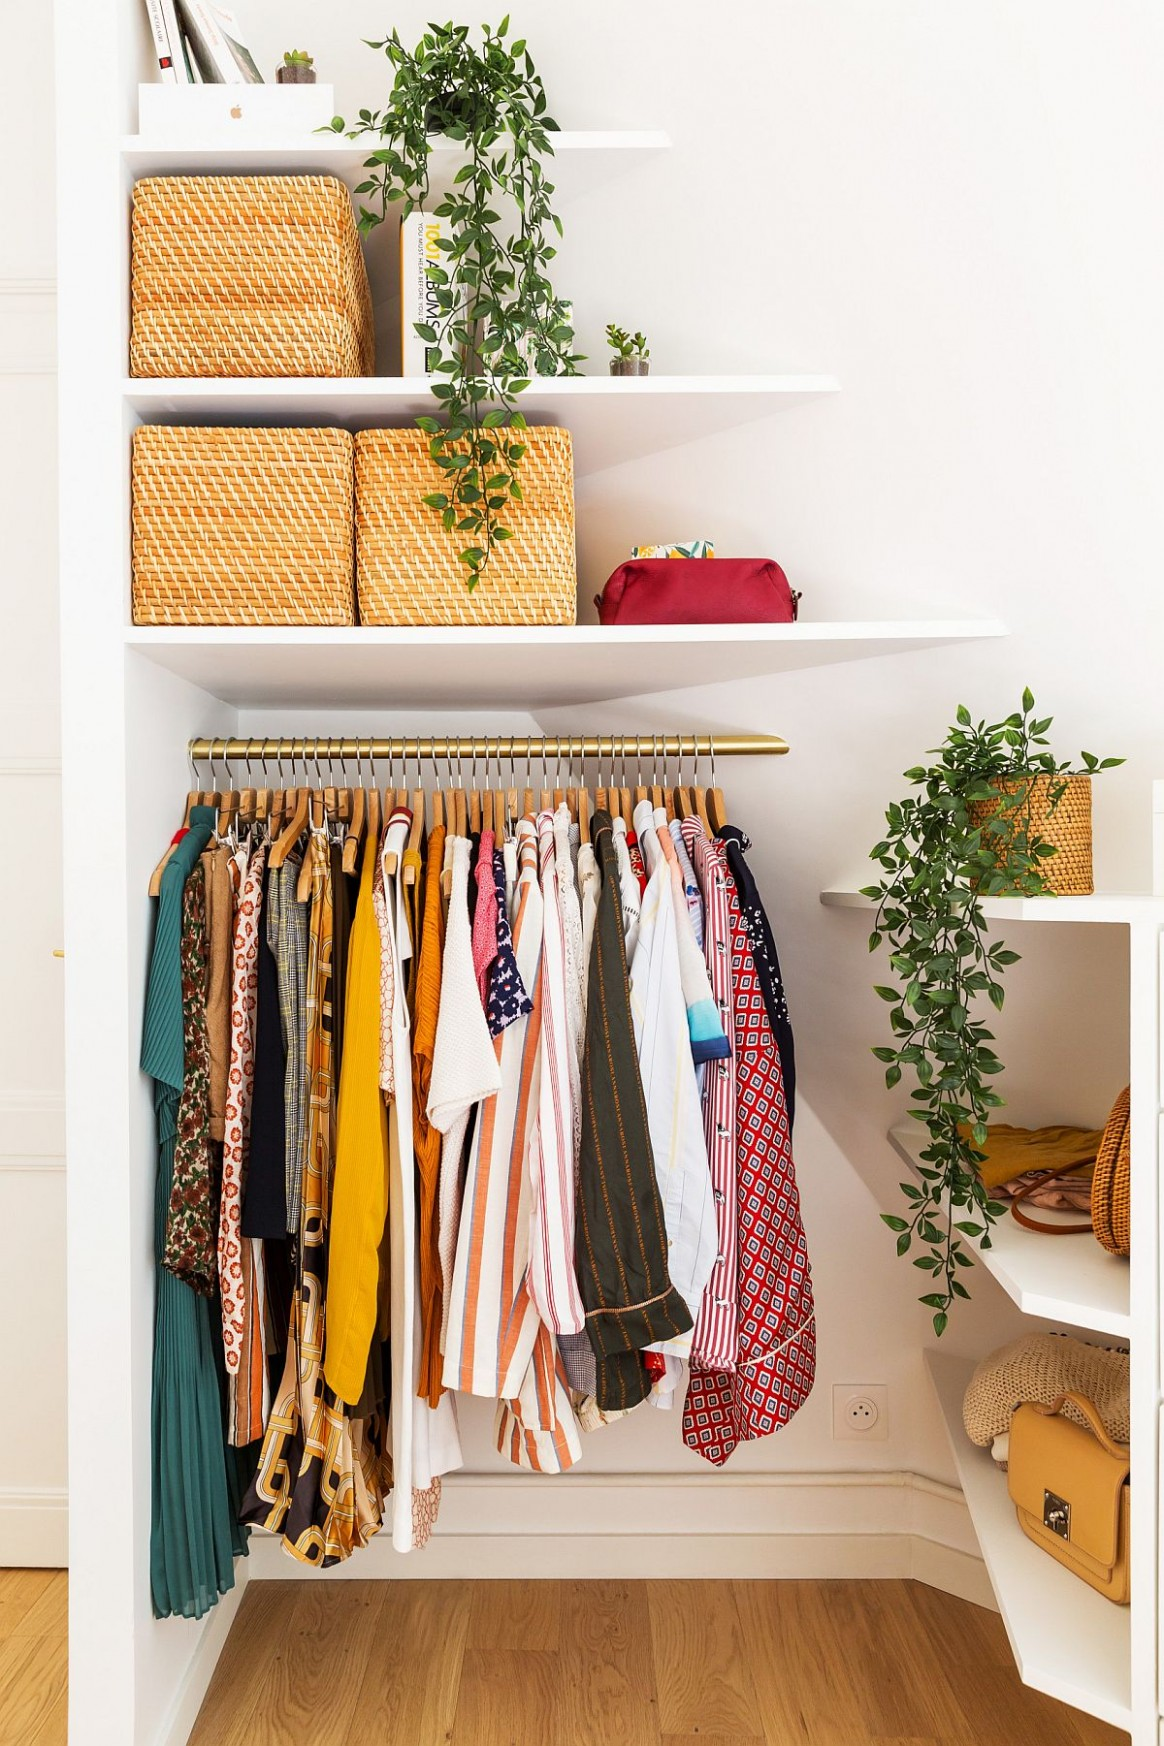 9 Small Apartment Closet Ideas that Save Space with Innovative Design - Closet Ideas Small Bedrooms